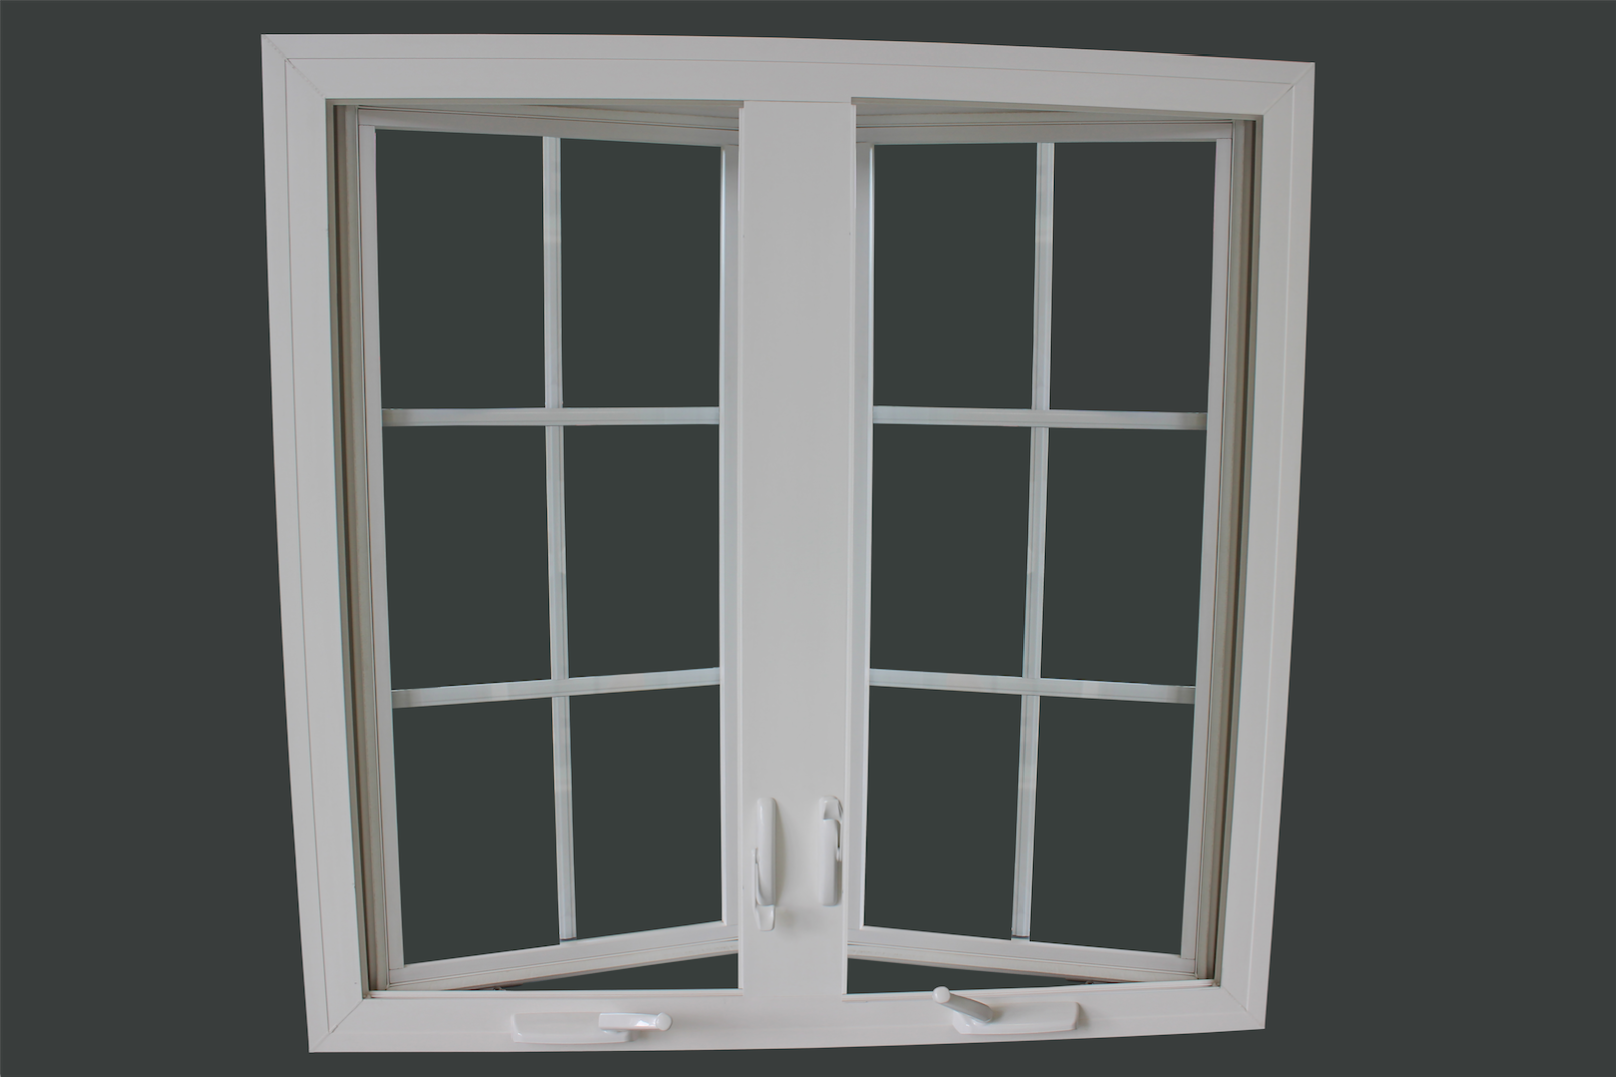 Replacement casement windows specialty wholesale supply for Awning replacement windows